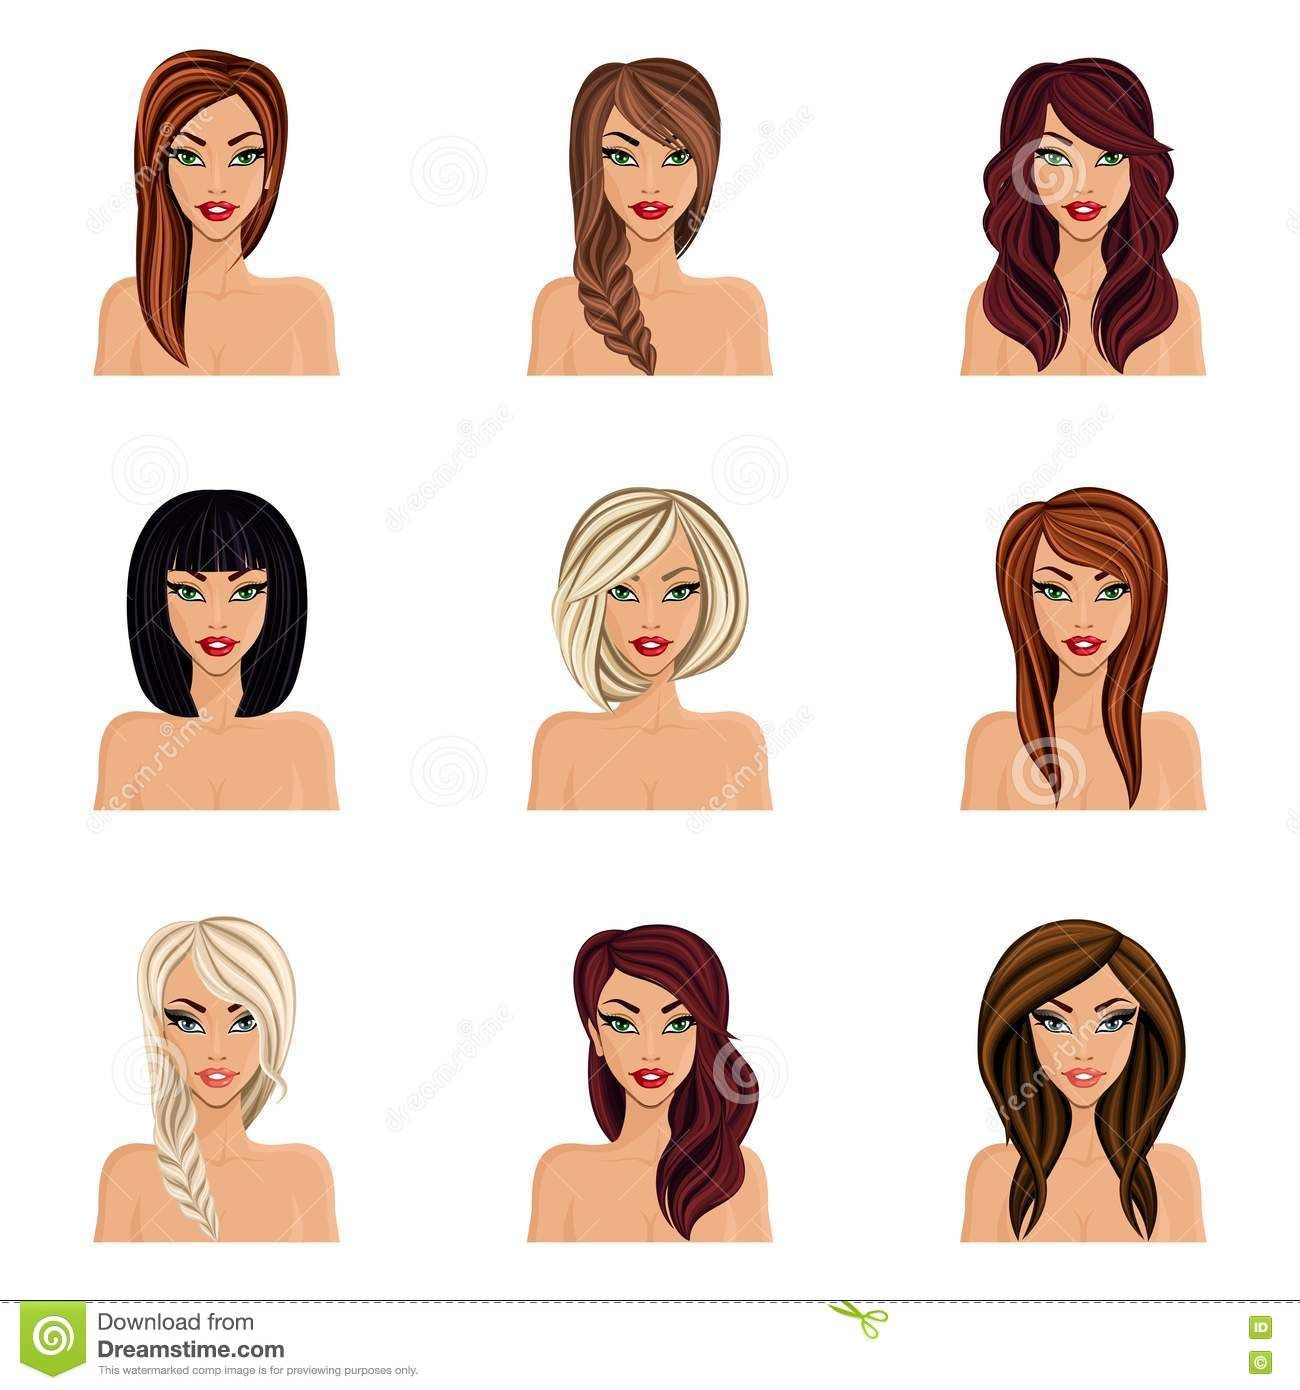 Hairstyles For Long Neck Cute Small Face Hairstyles Oval Face Hairstyles Haircuts For Small Faces